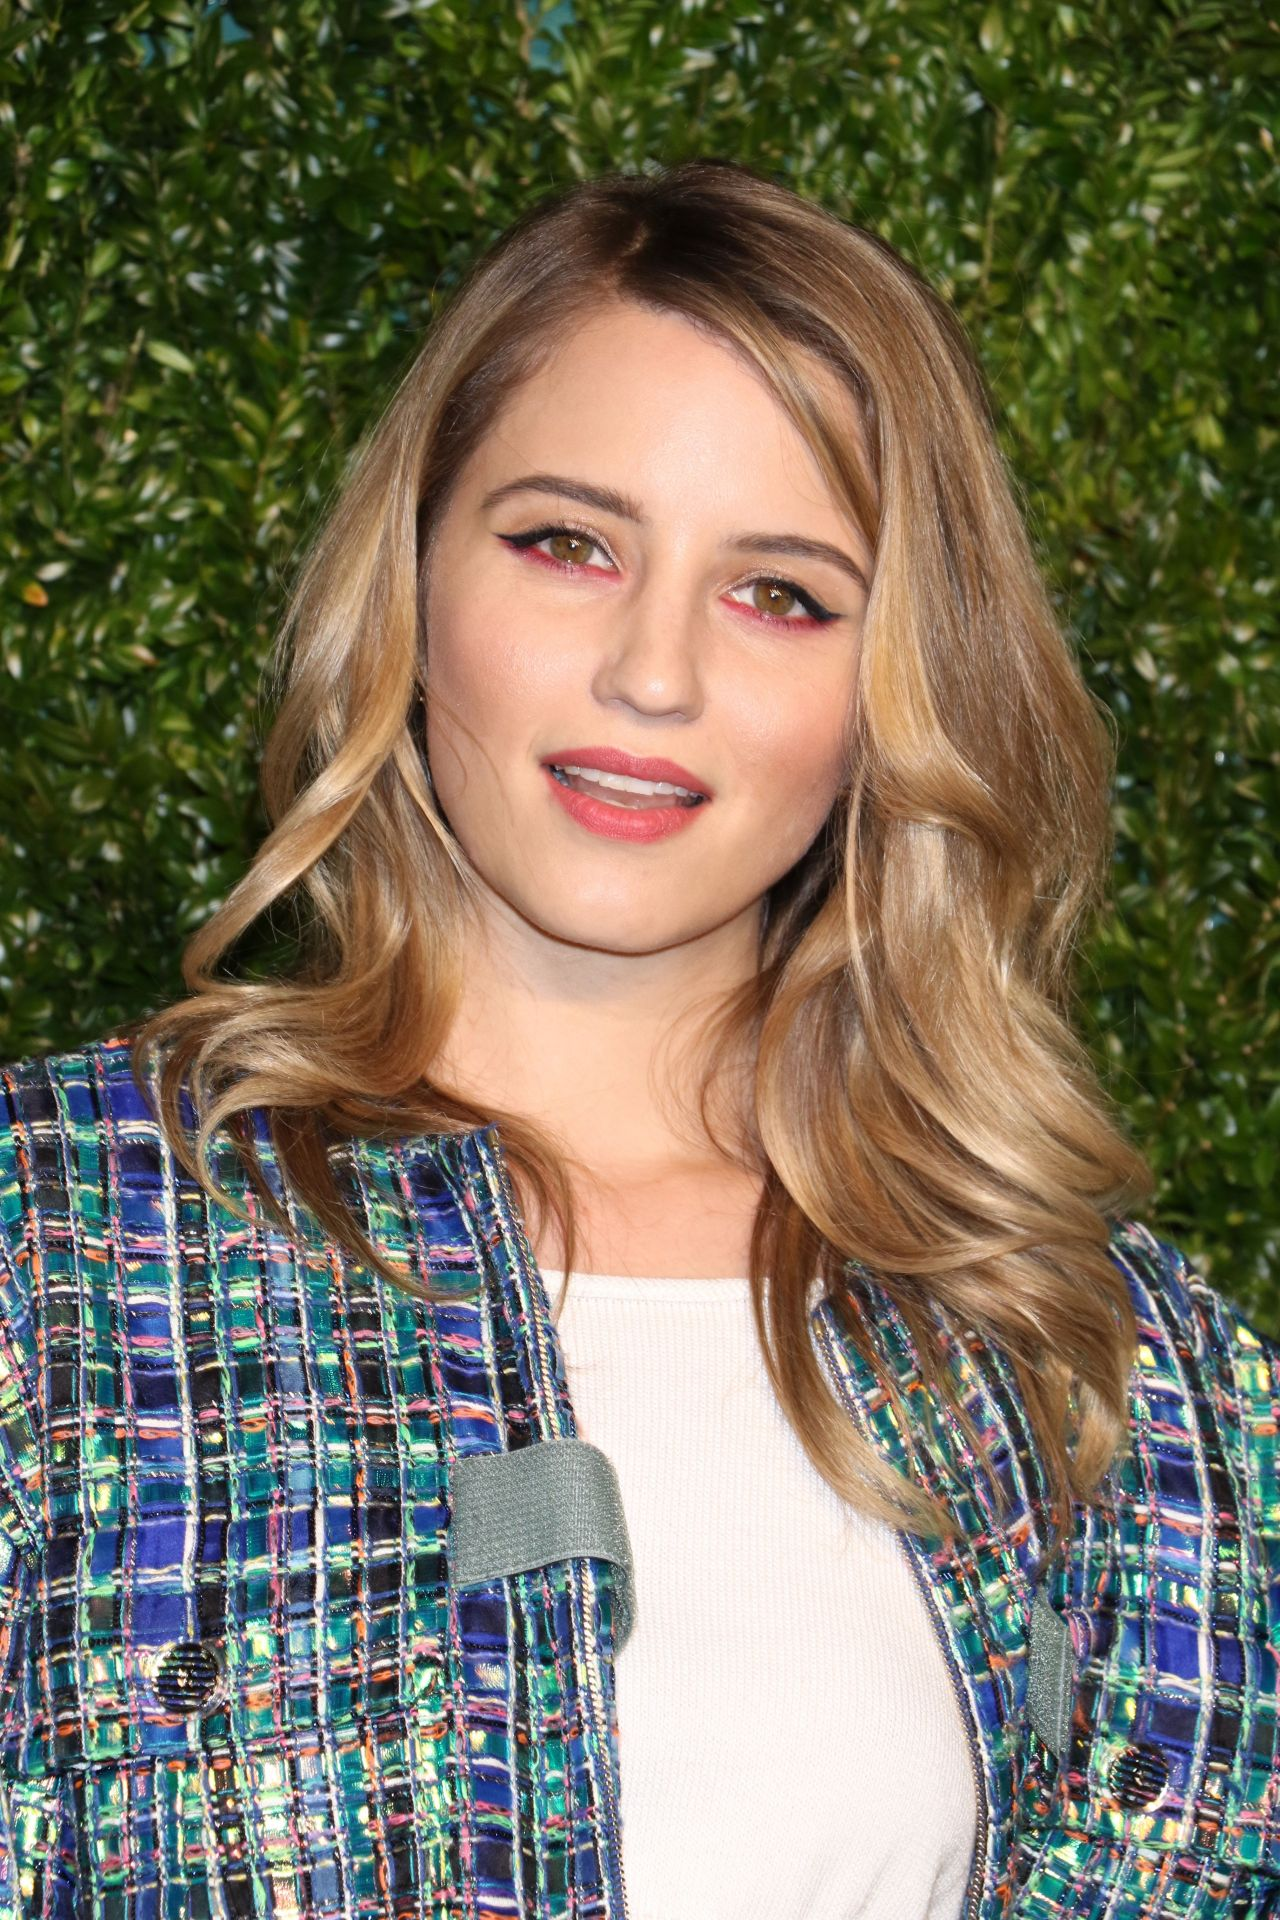 dianna agron 2017 - photo #42